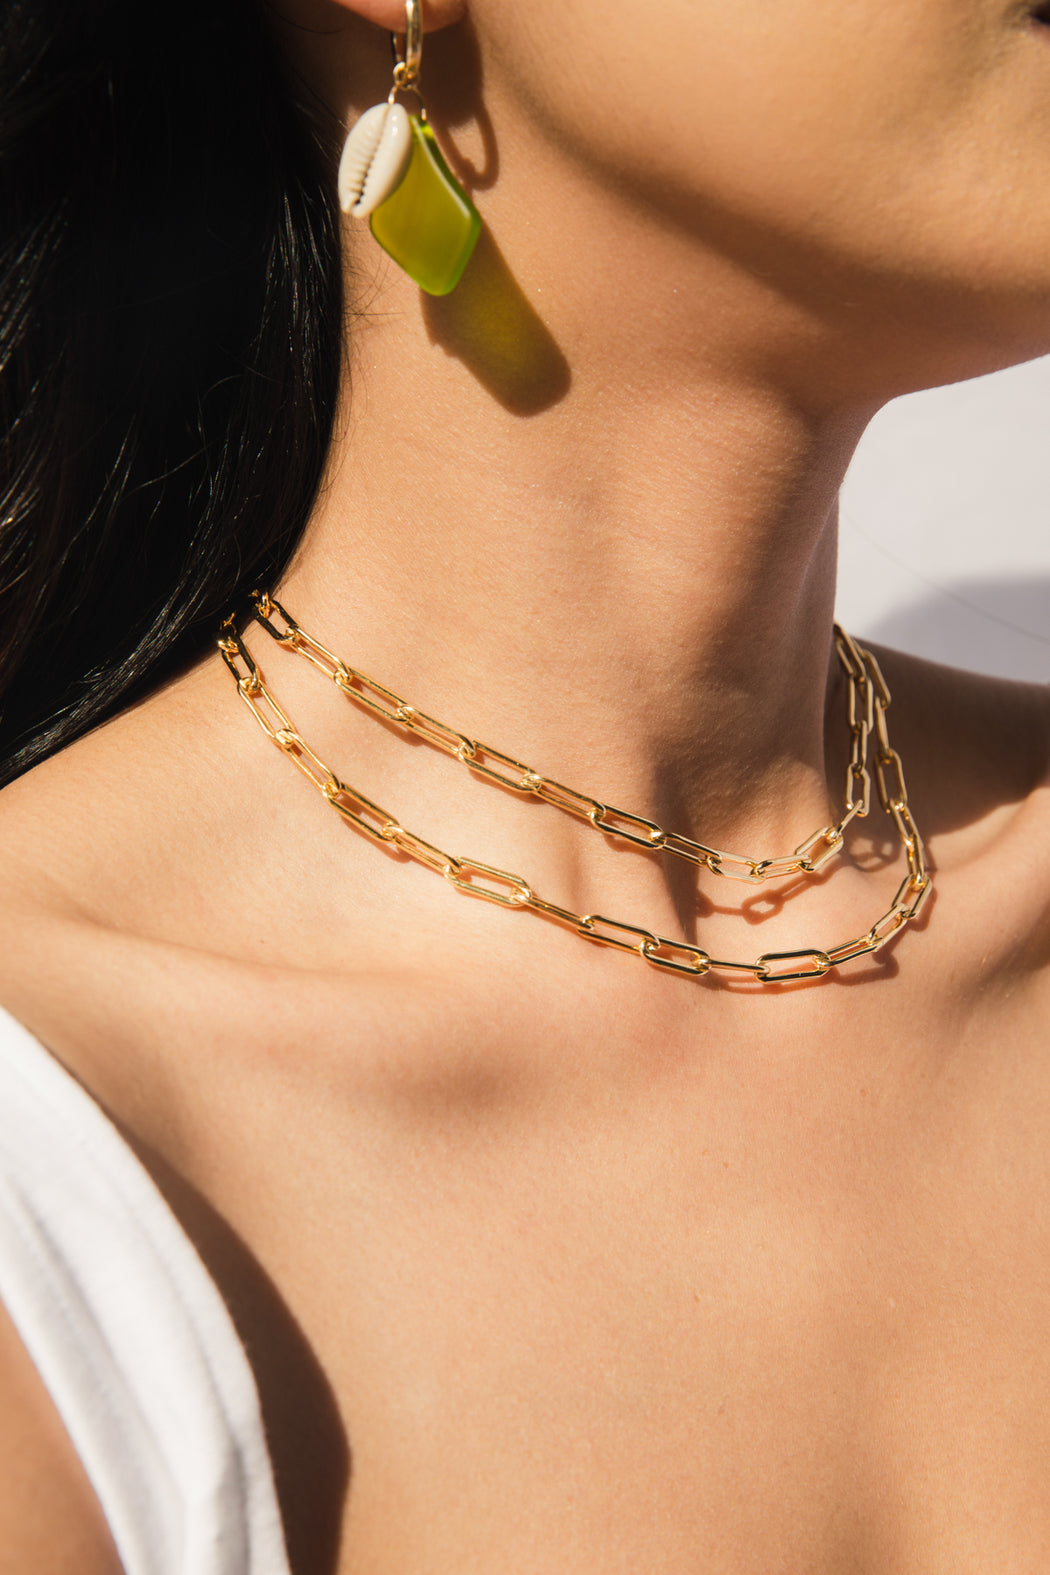 14k gold filled link chain necklace